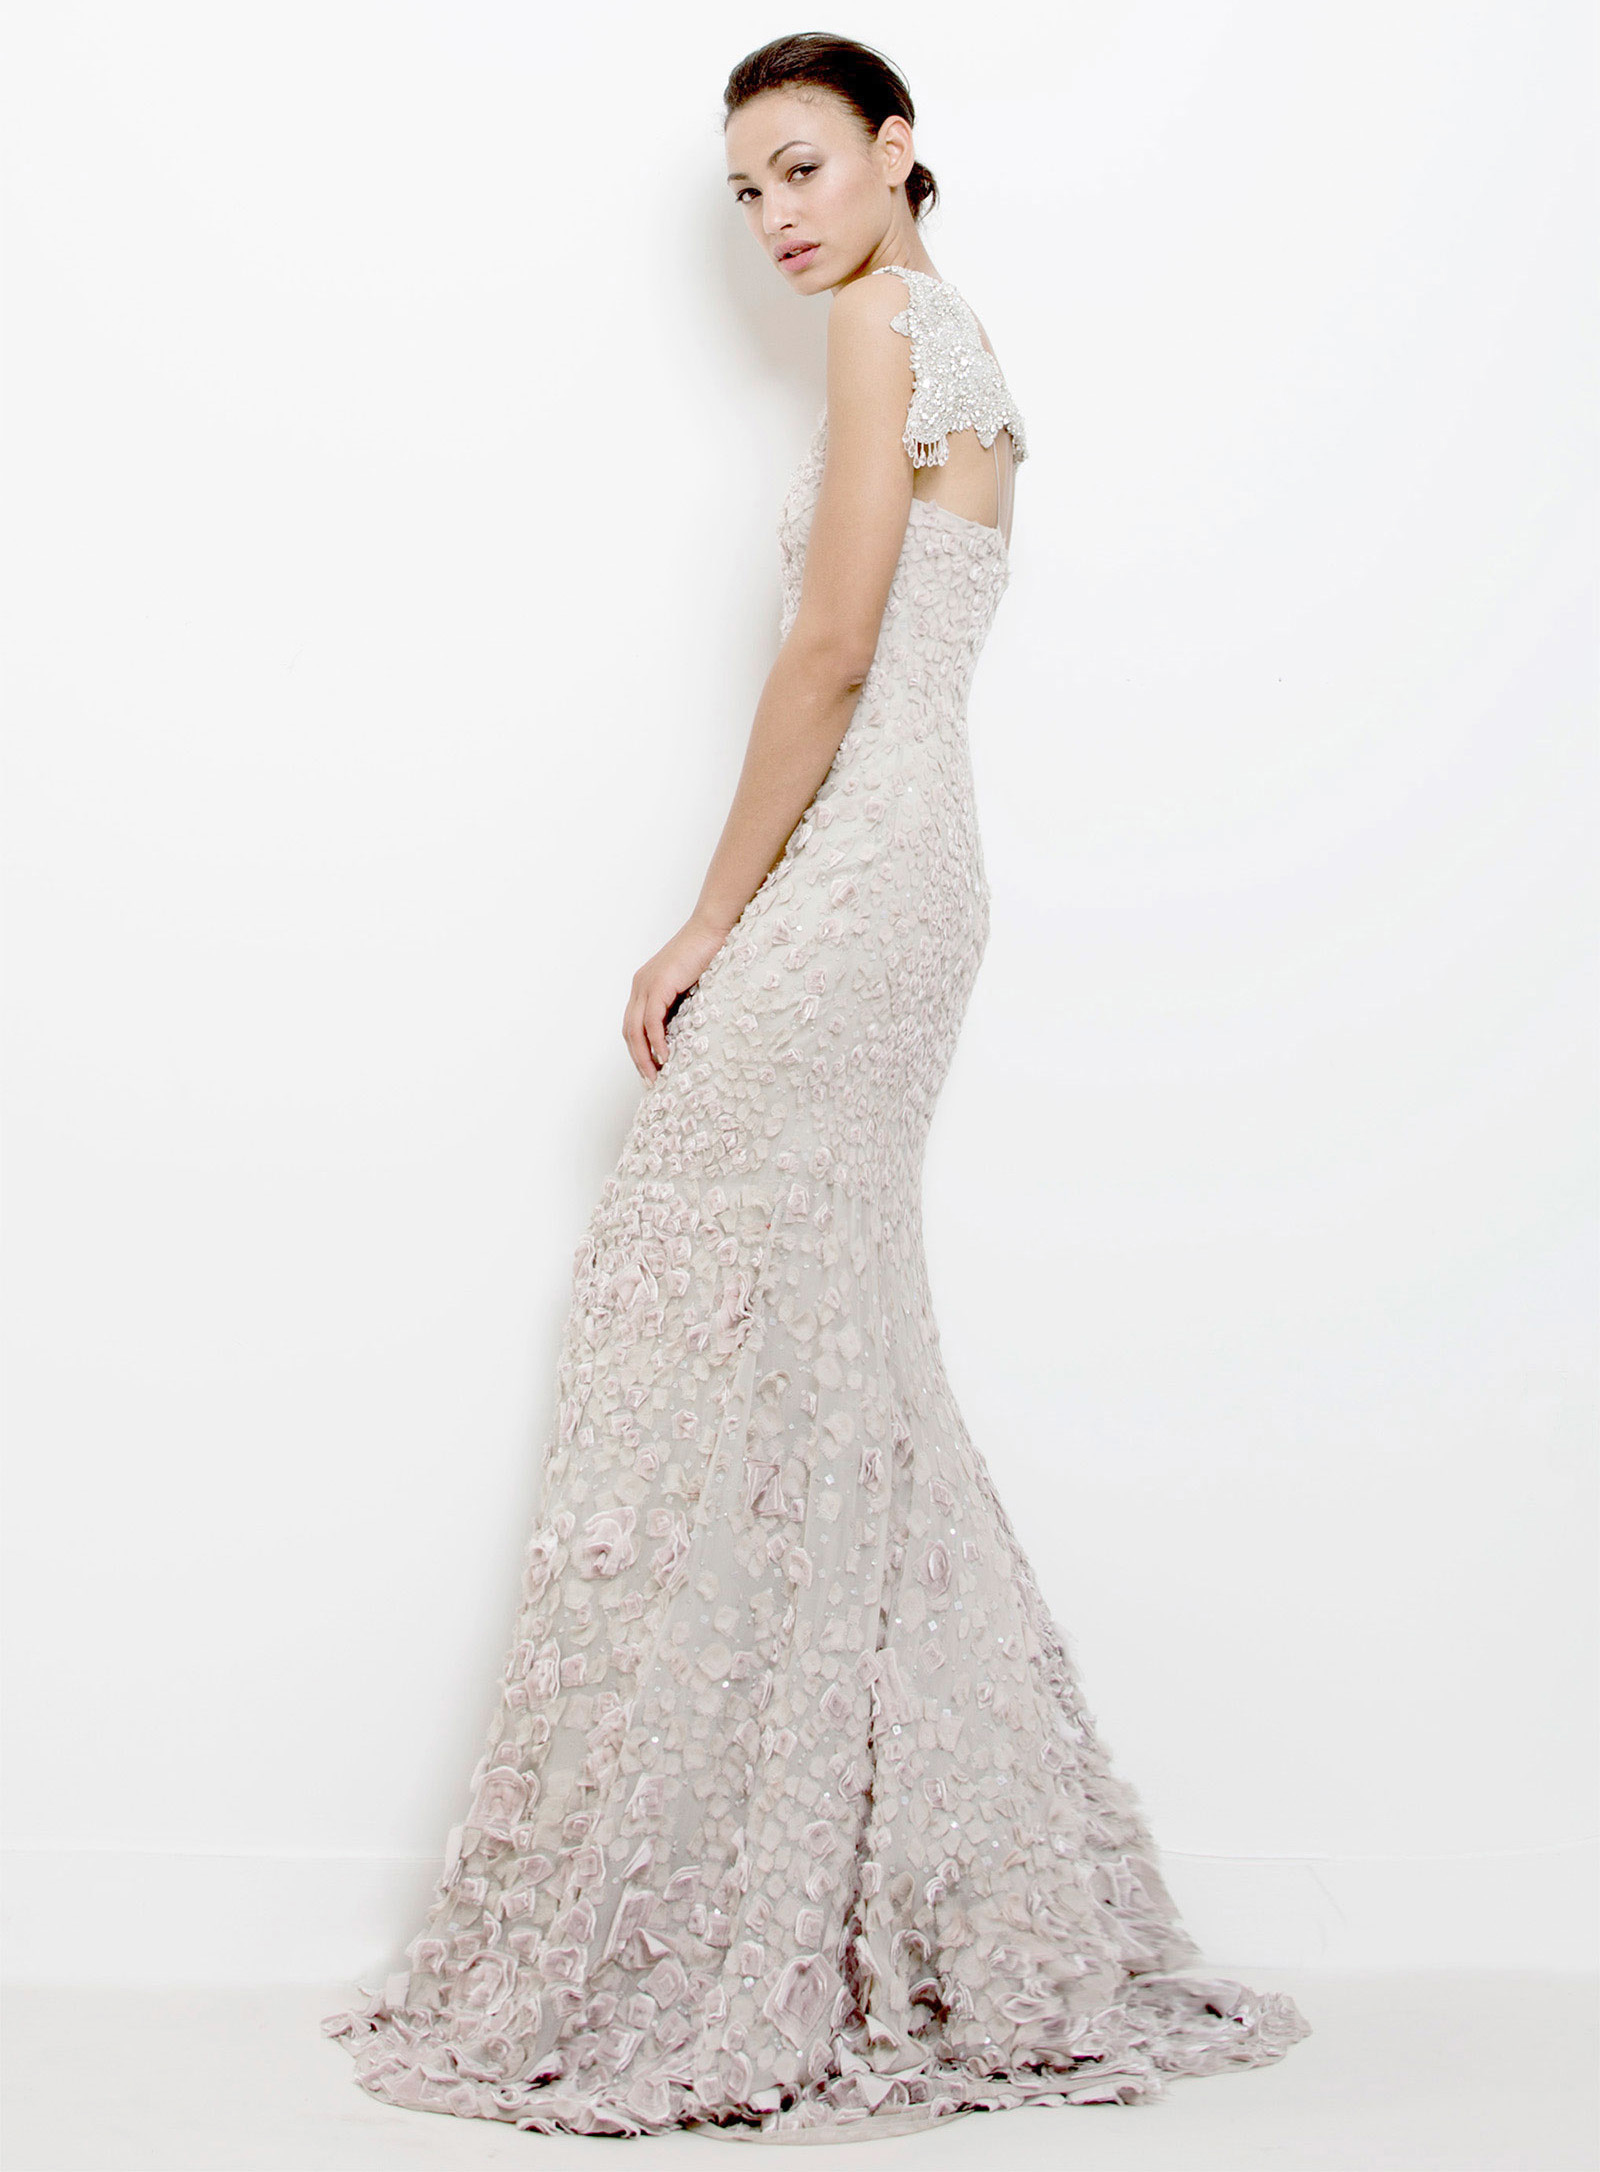 Selia Yang Evening Bridal Wedding Gowns Designer Nyc